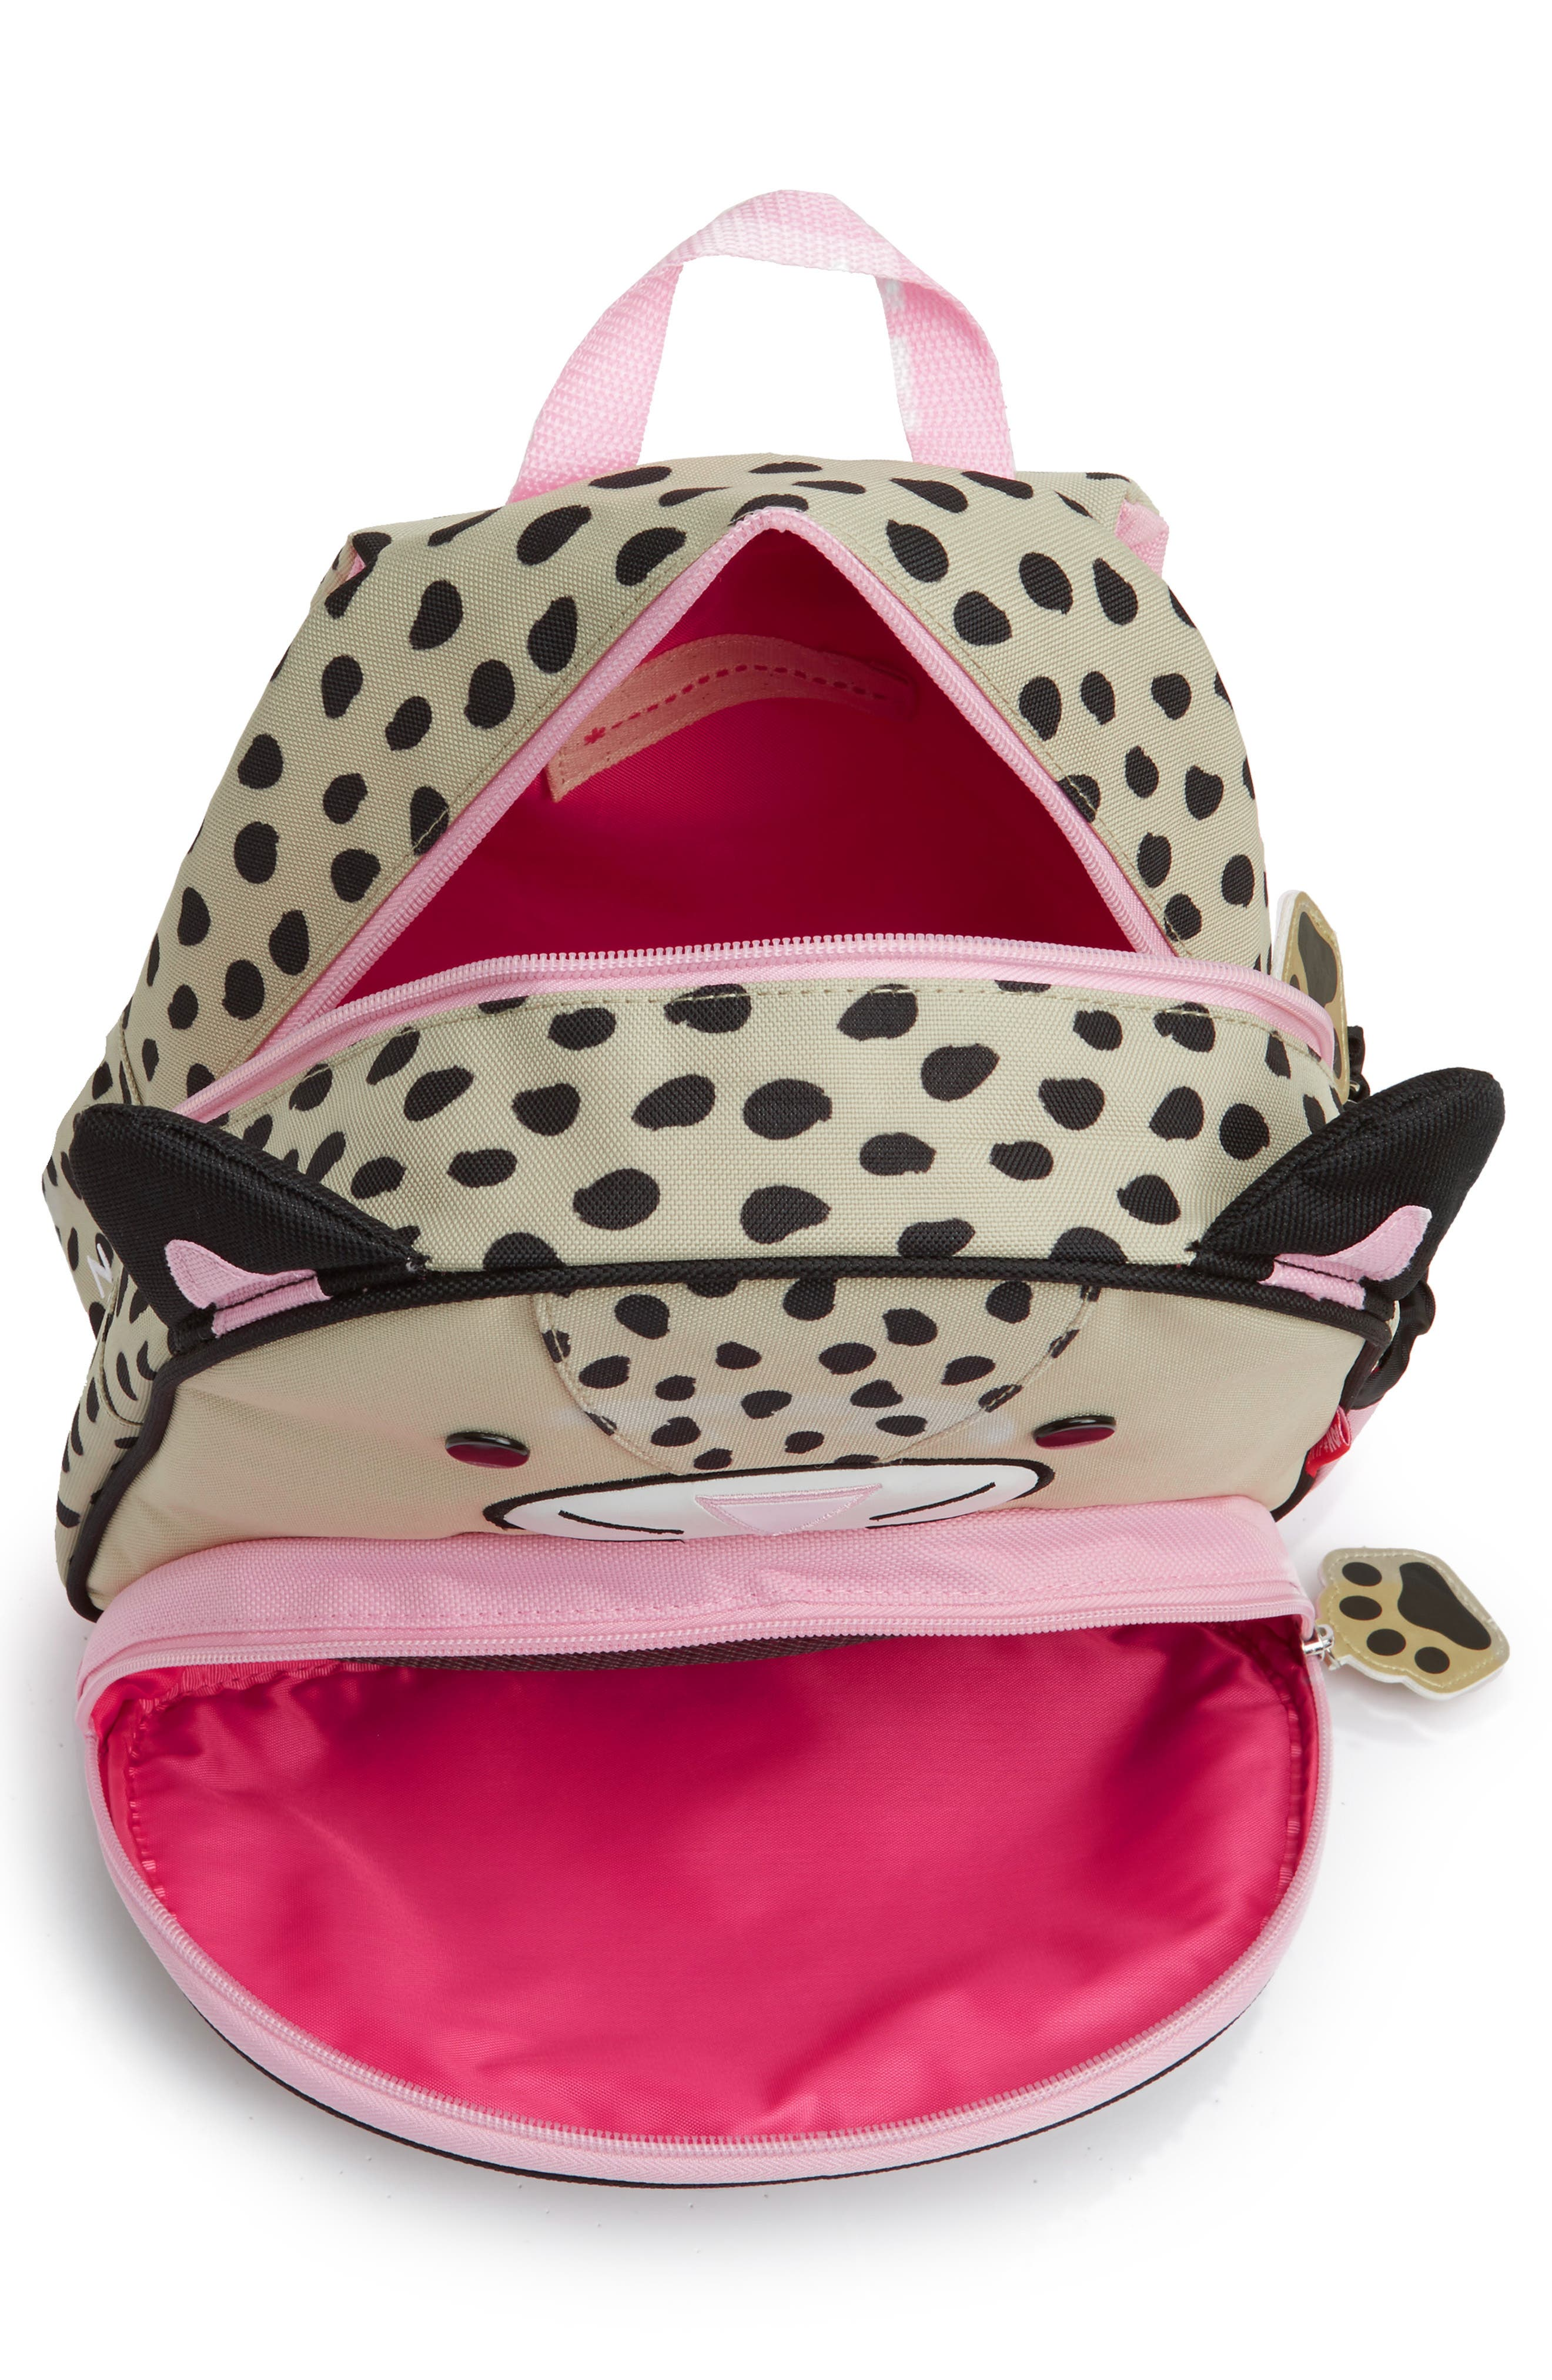 Zoo Pack Backpack,                             Alternate thumbnail 55, color,